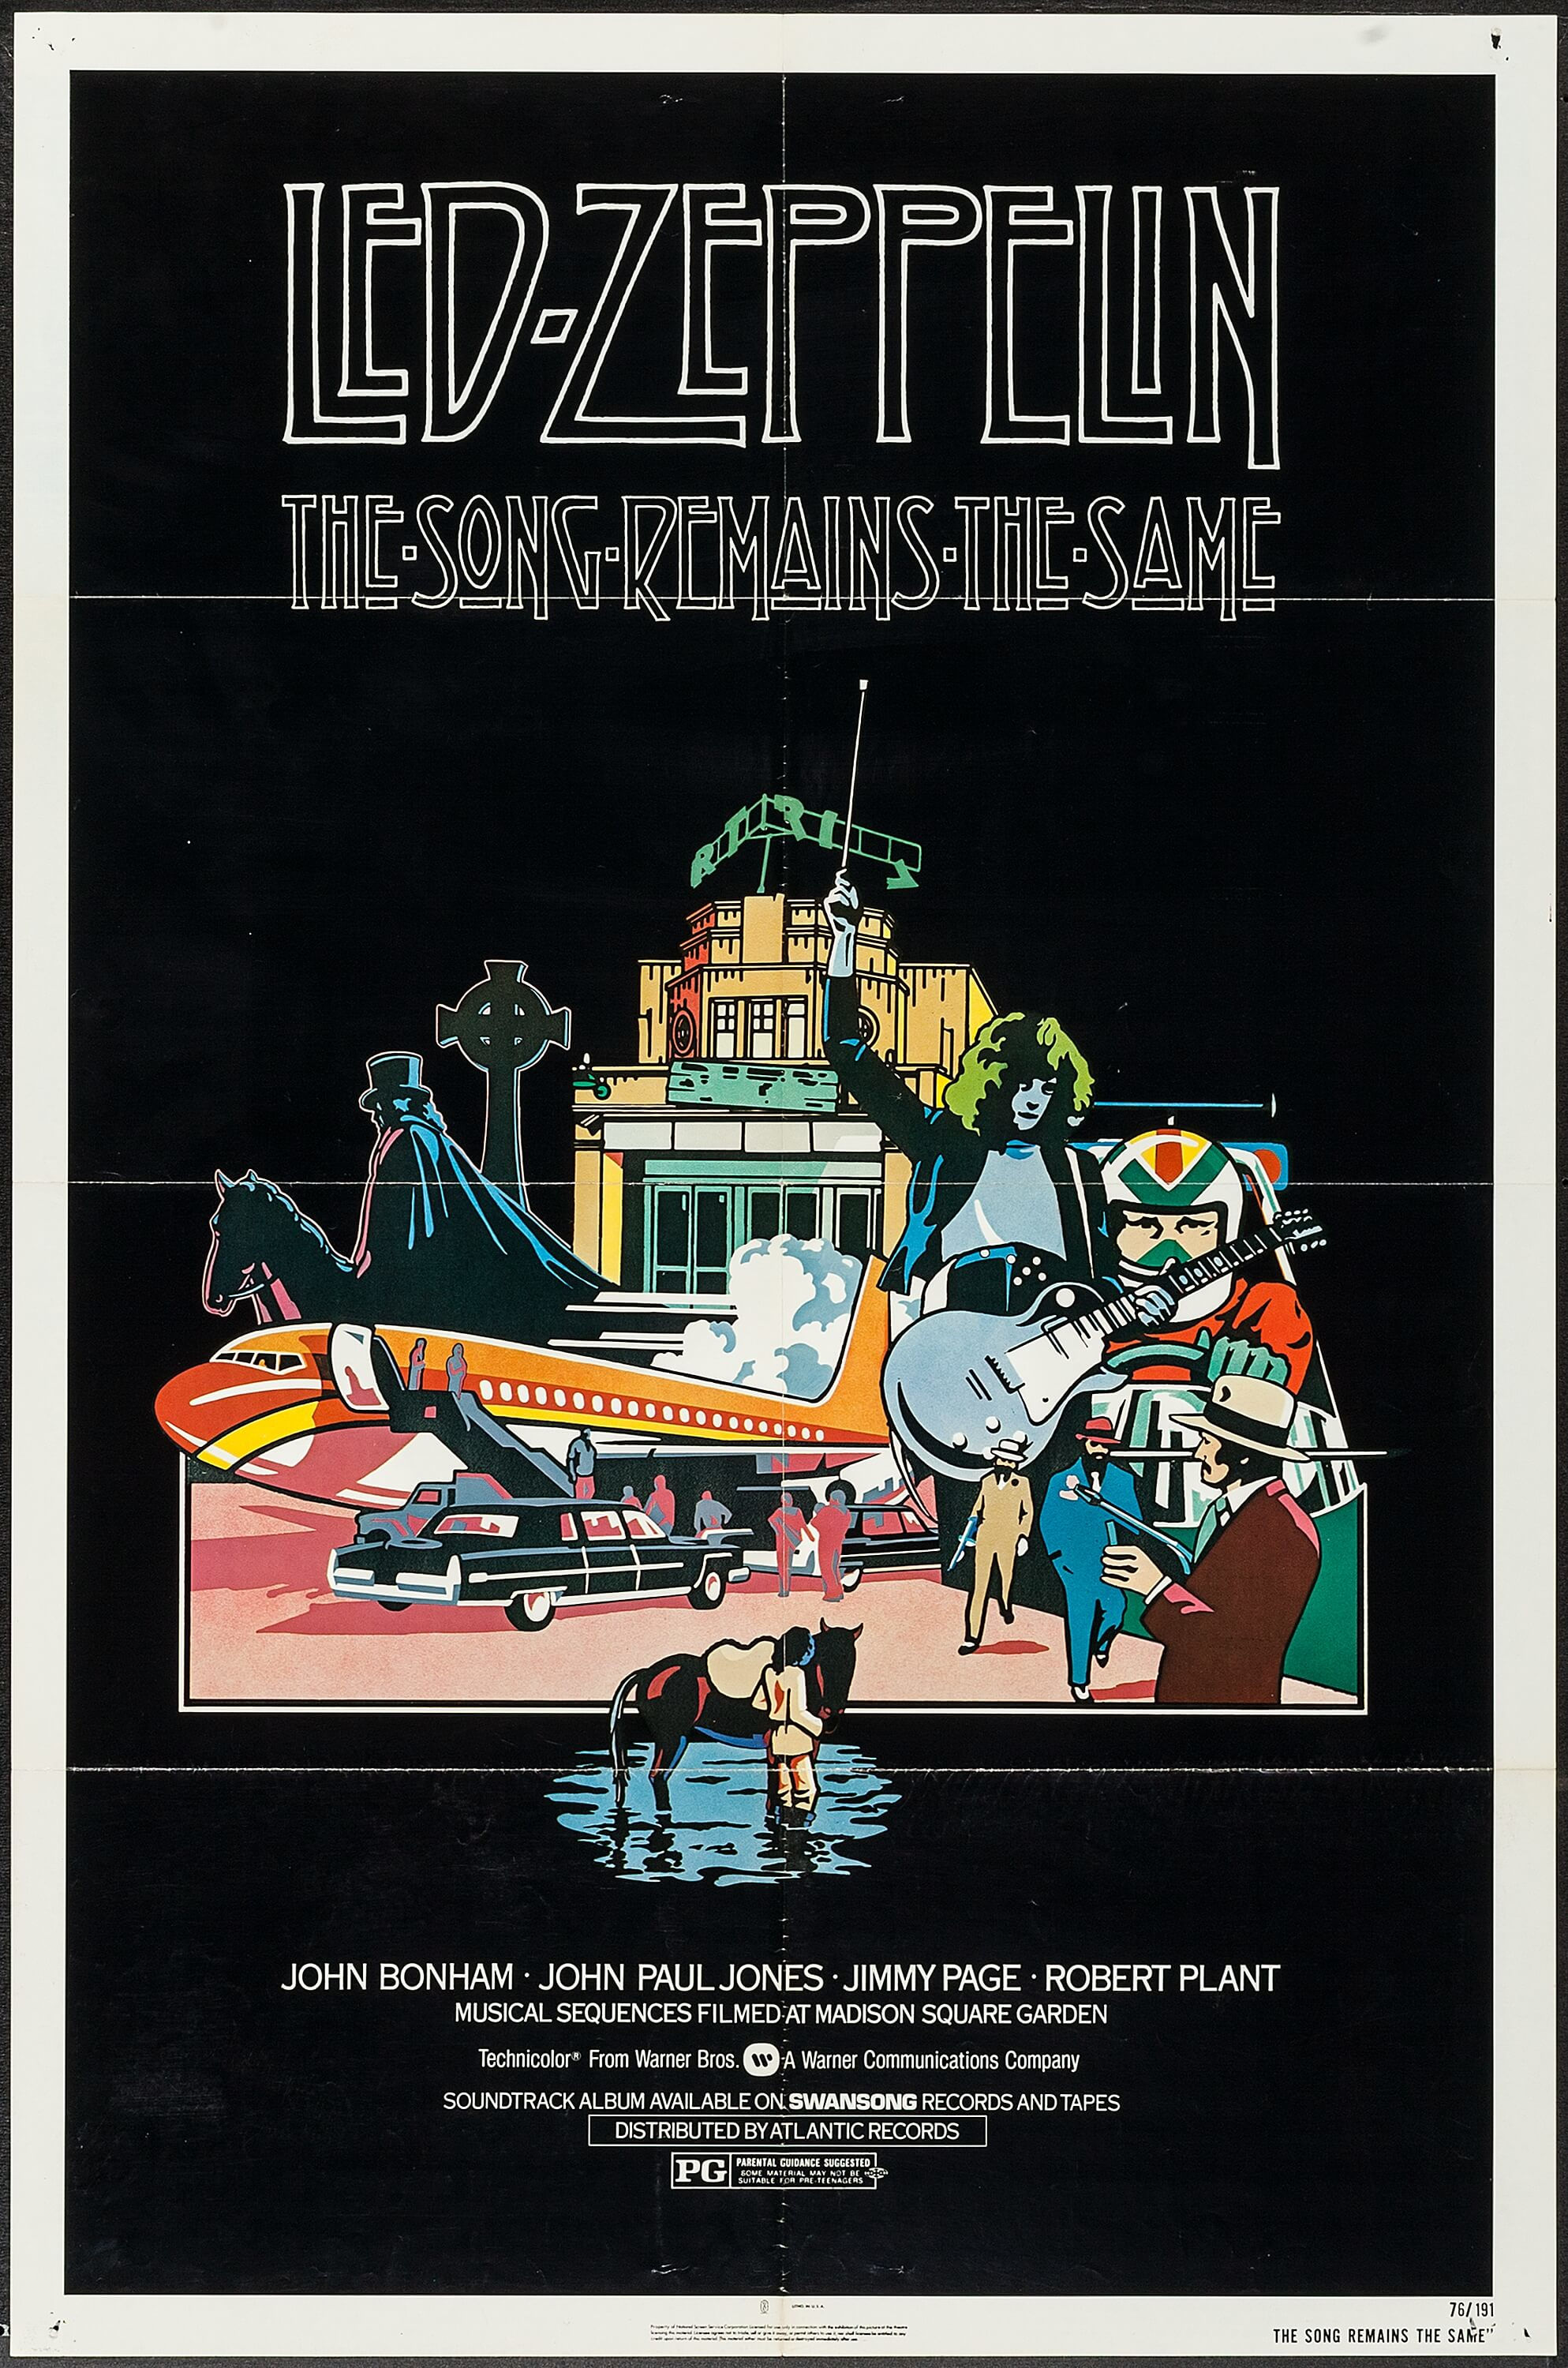 KRCL | Music Meets Movies-Led Zeppelin The Song Remains the Same